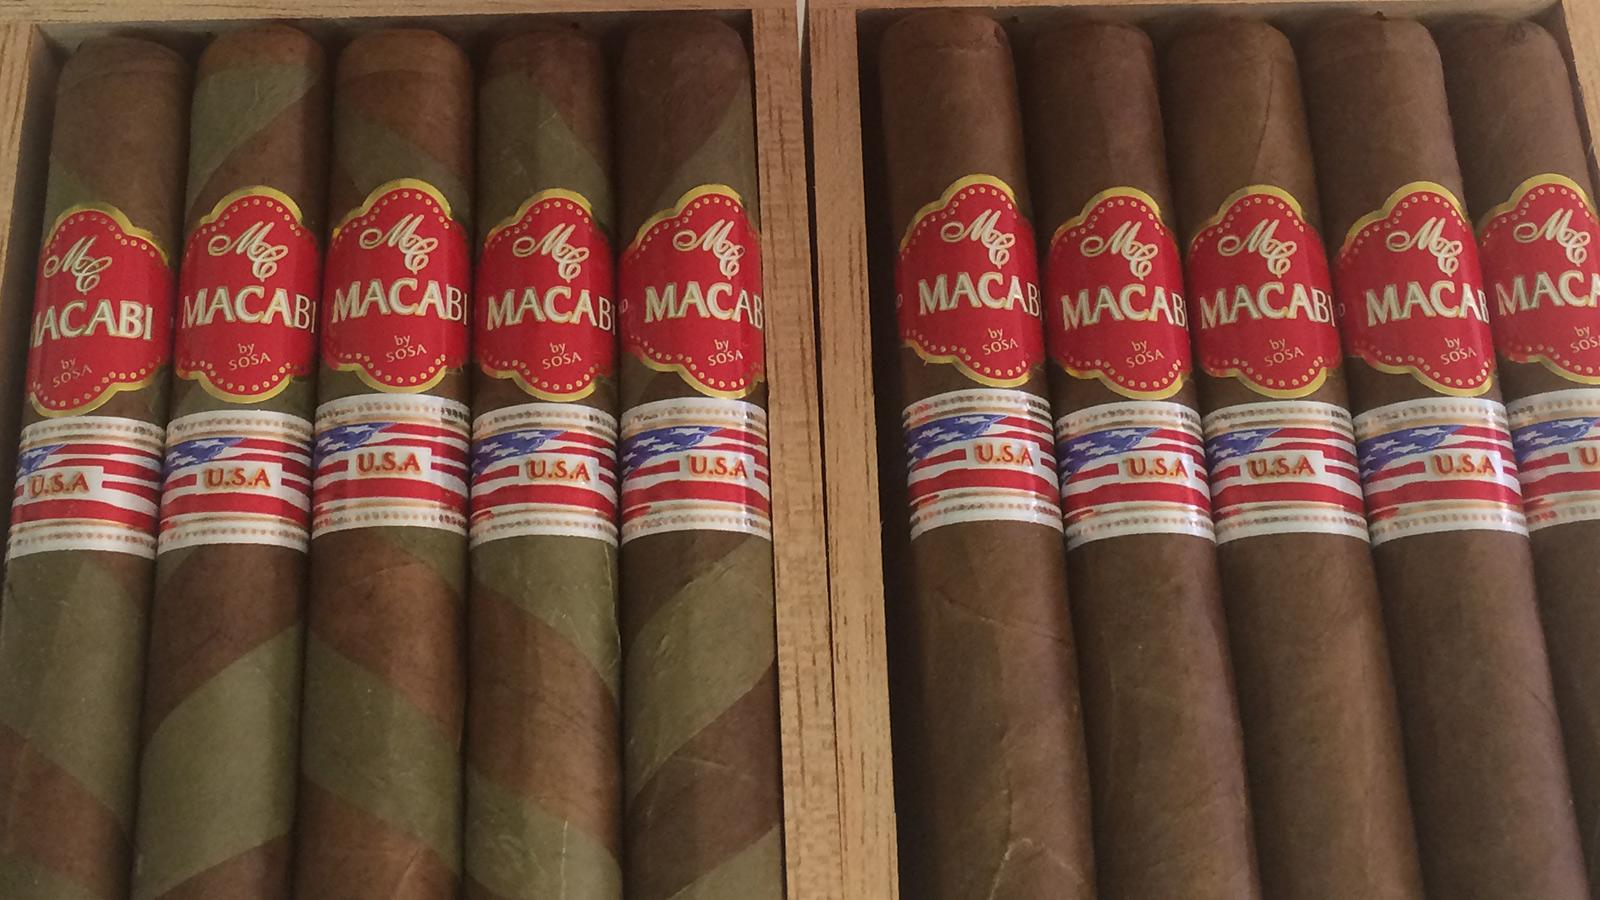 Antillian's New Macabi USA Celebrates 50 Years